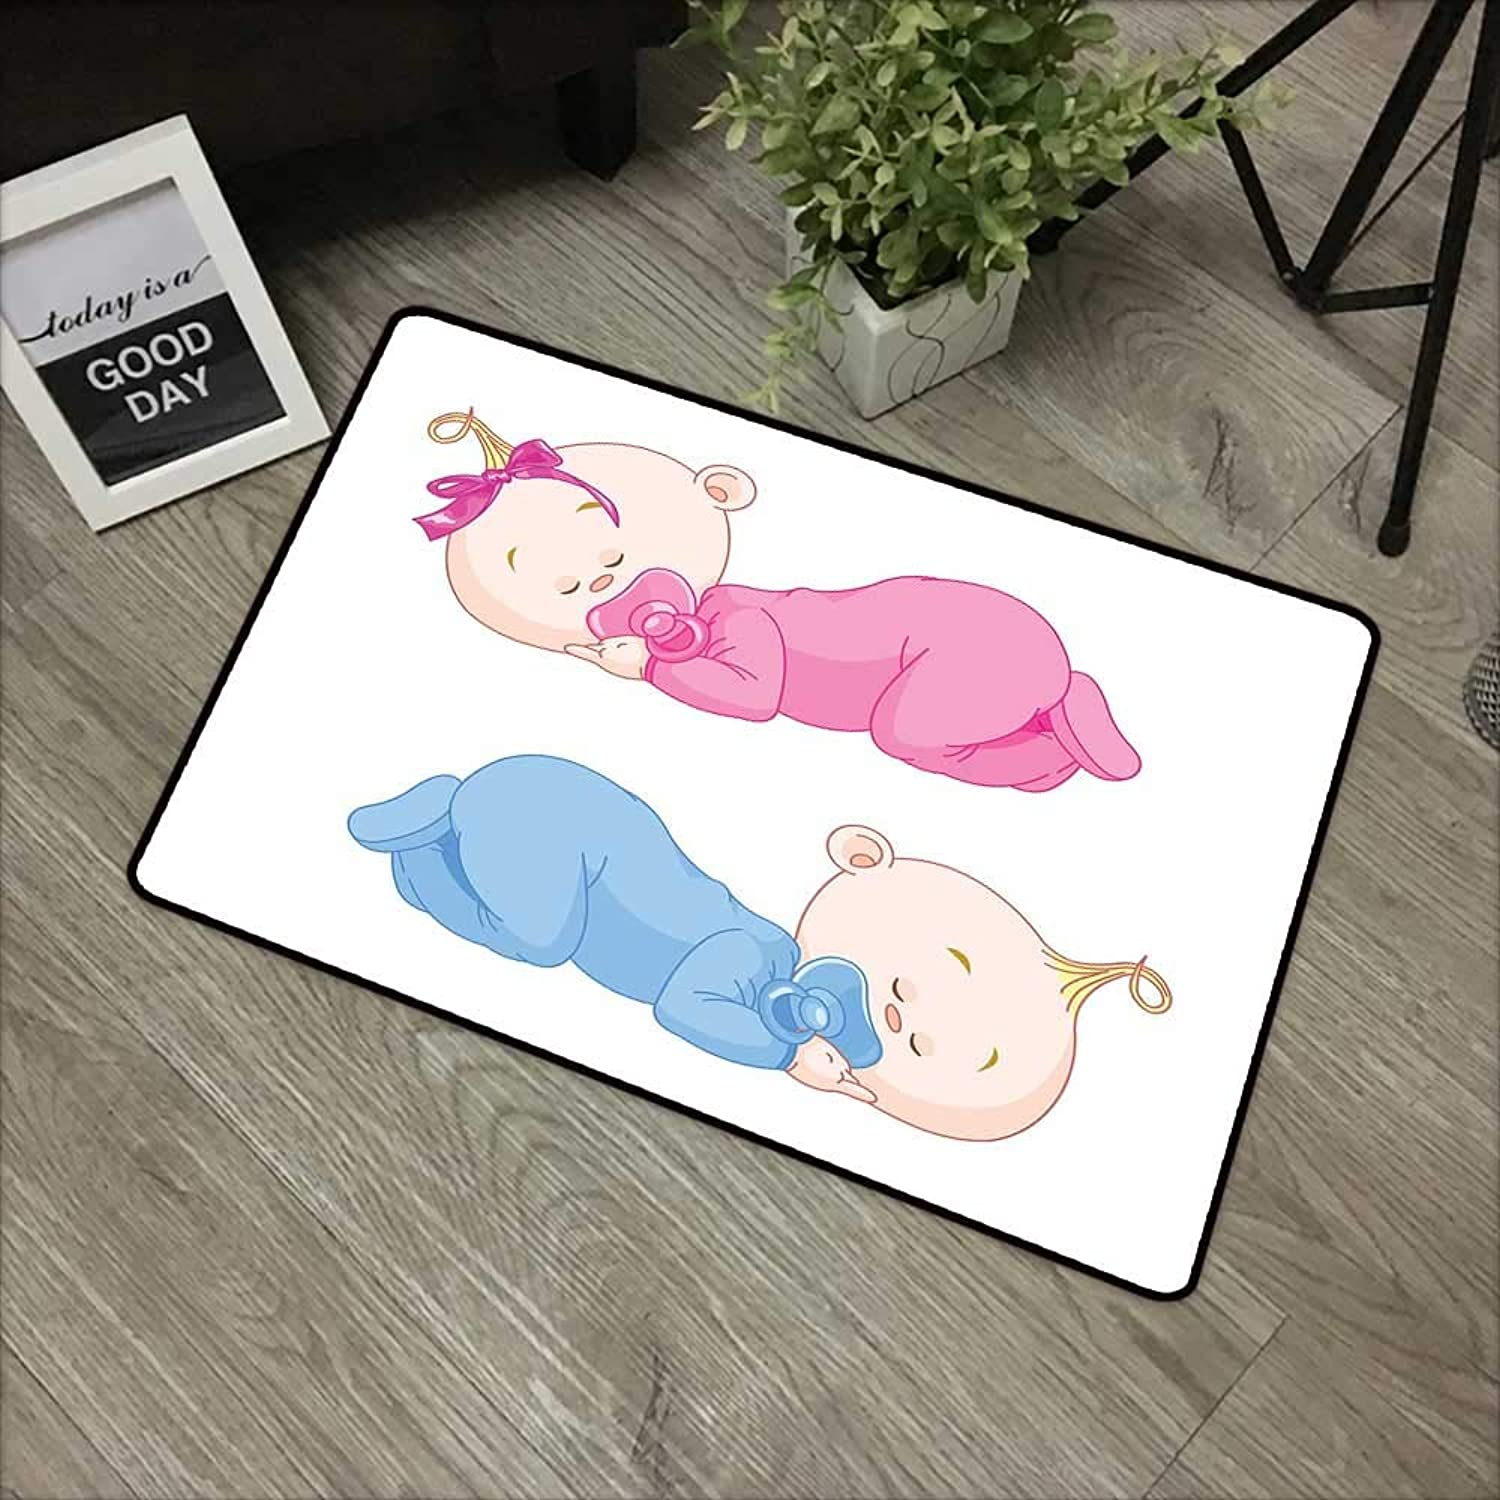 Interior mat W35 x L59 INCH Baby,Two Charming Little Twin Siblings Bredher and Sister Sleeping in Pajamas Toddler,Pink bluee Tan Easy to Clean, no Deformation, no Fading Non-Slip Door Mat Carpet